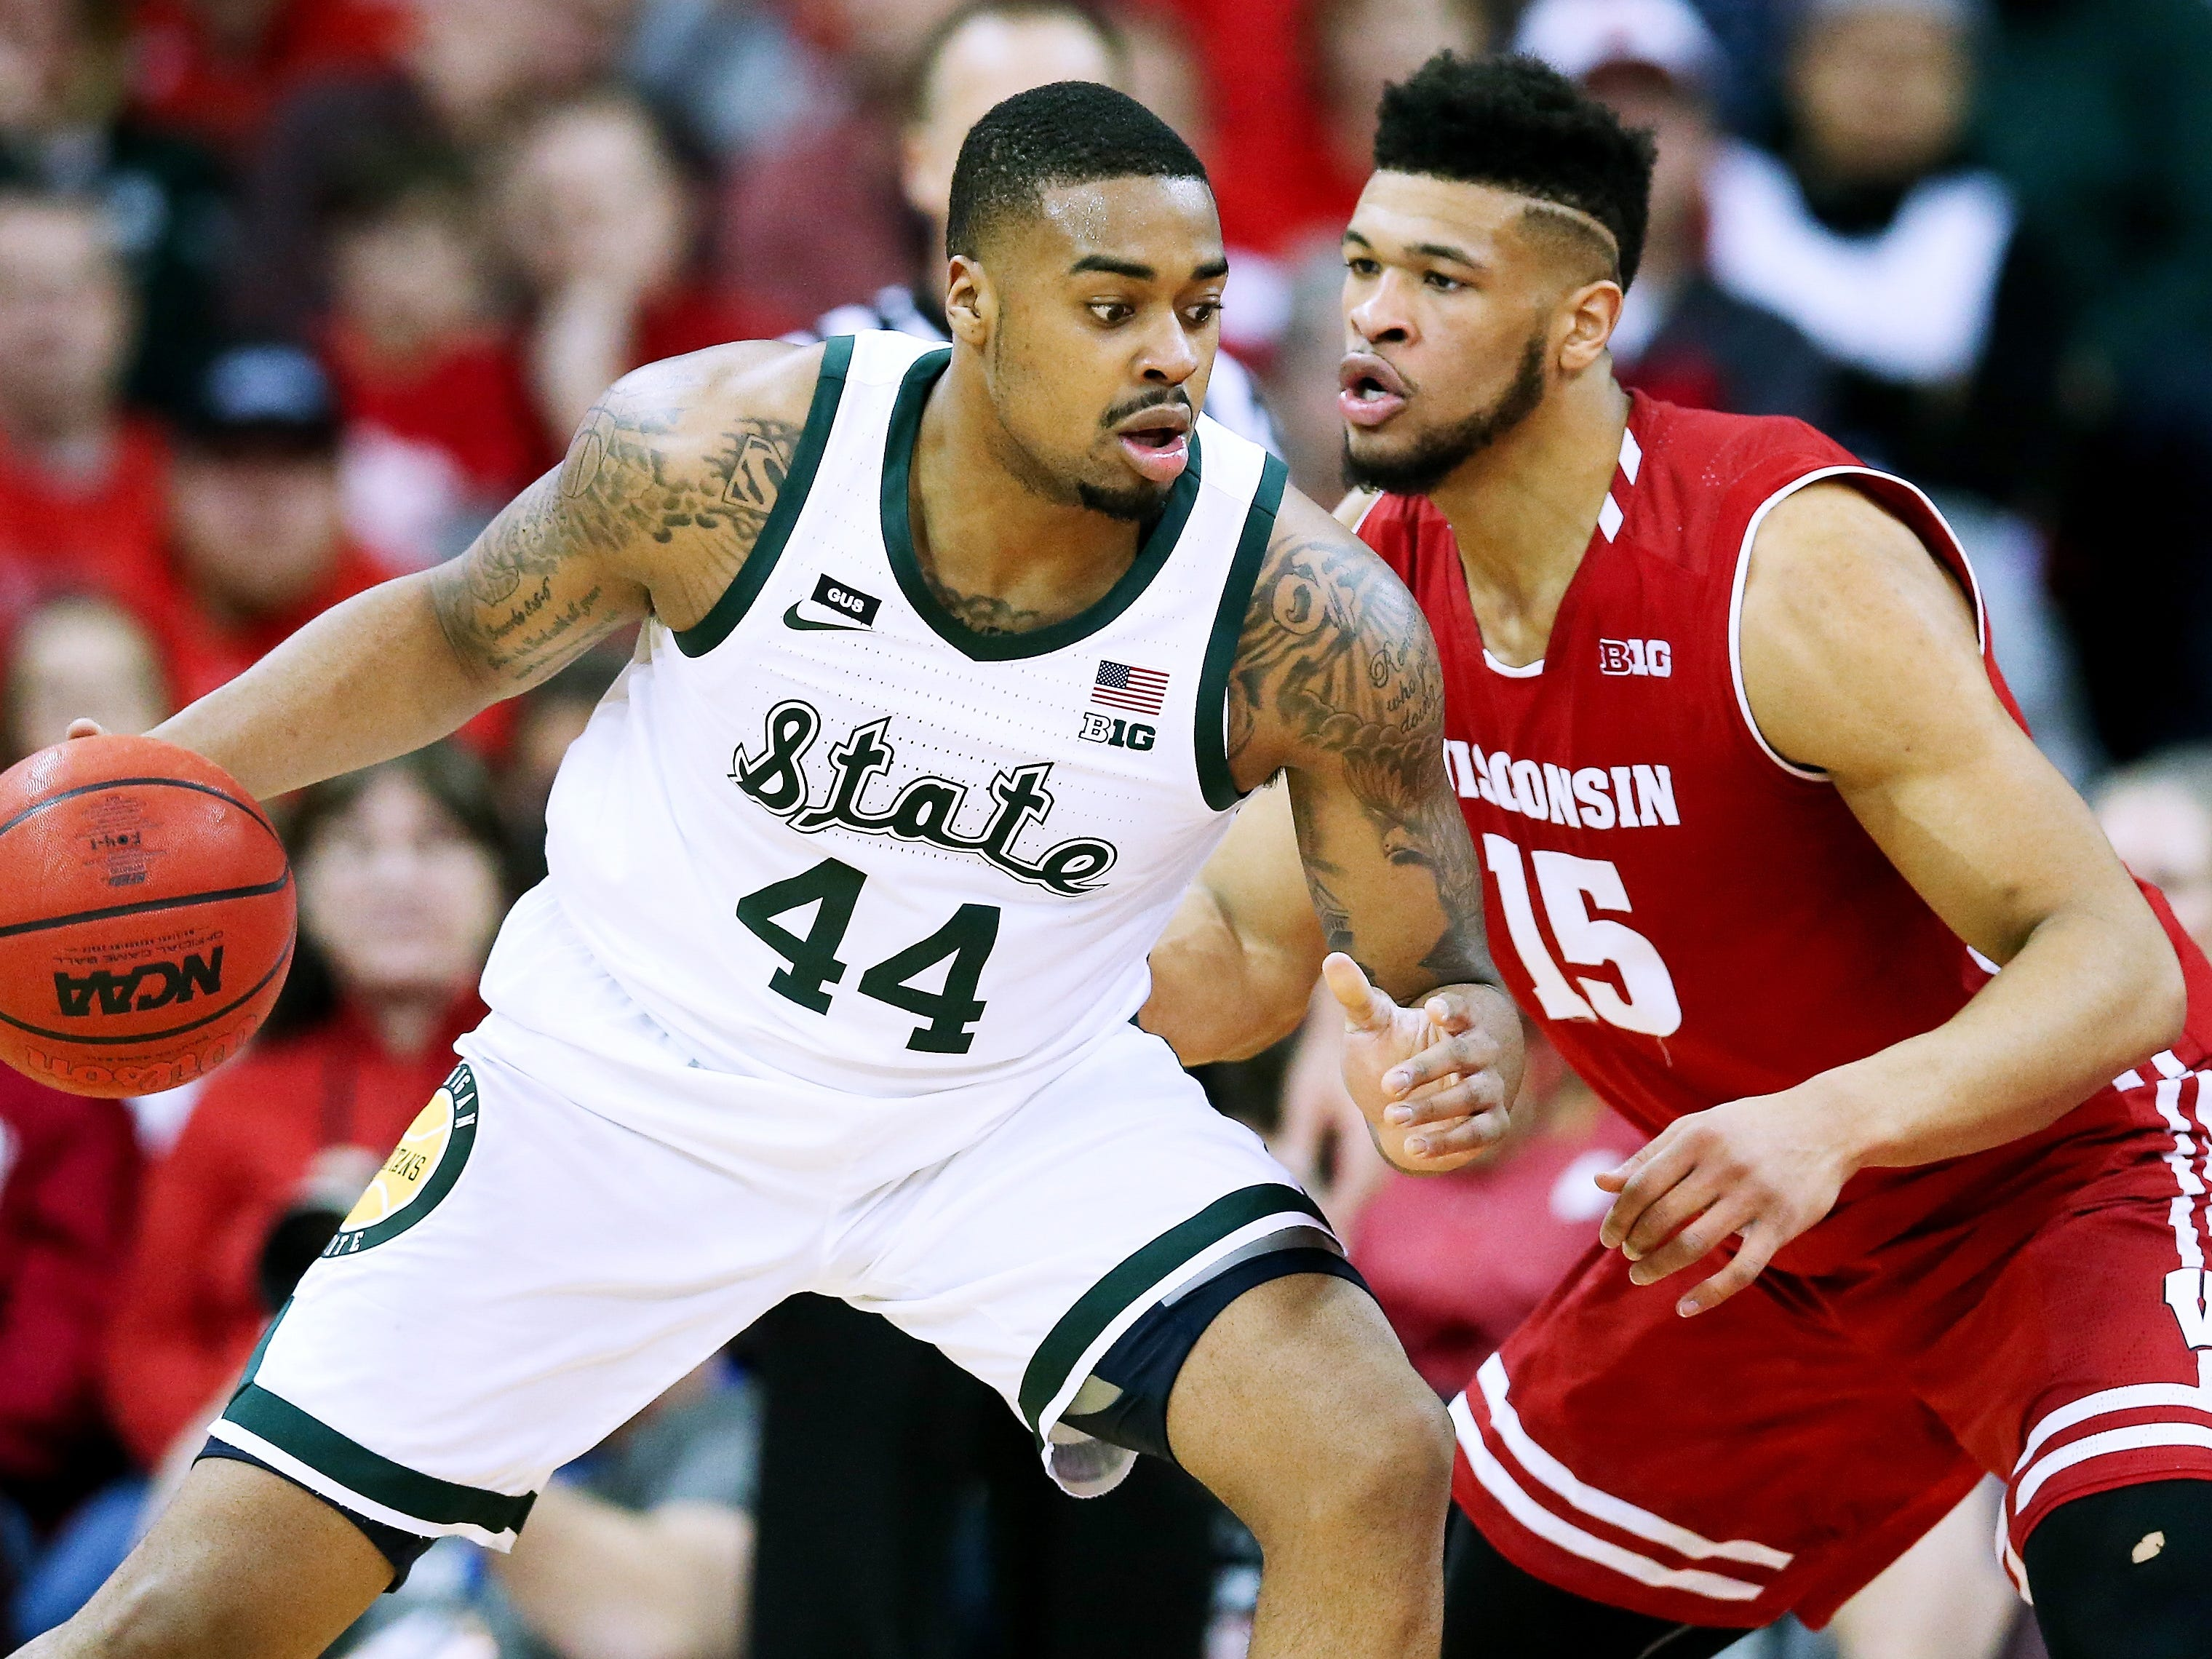 Michigan State's Nick Ward dribbles while guarded by Charles Thomas IV of Wisconsin in the first half at the Kohl Center on Feb. 12, 2019 in Madison, Wis.